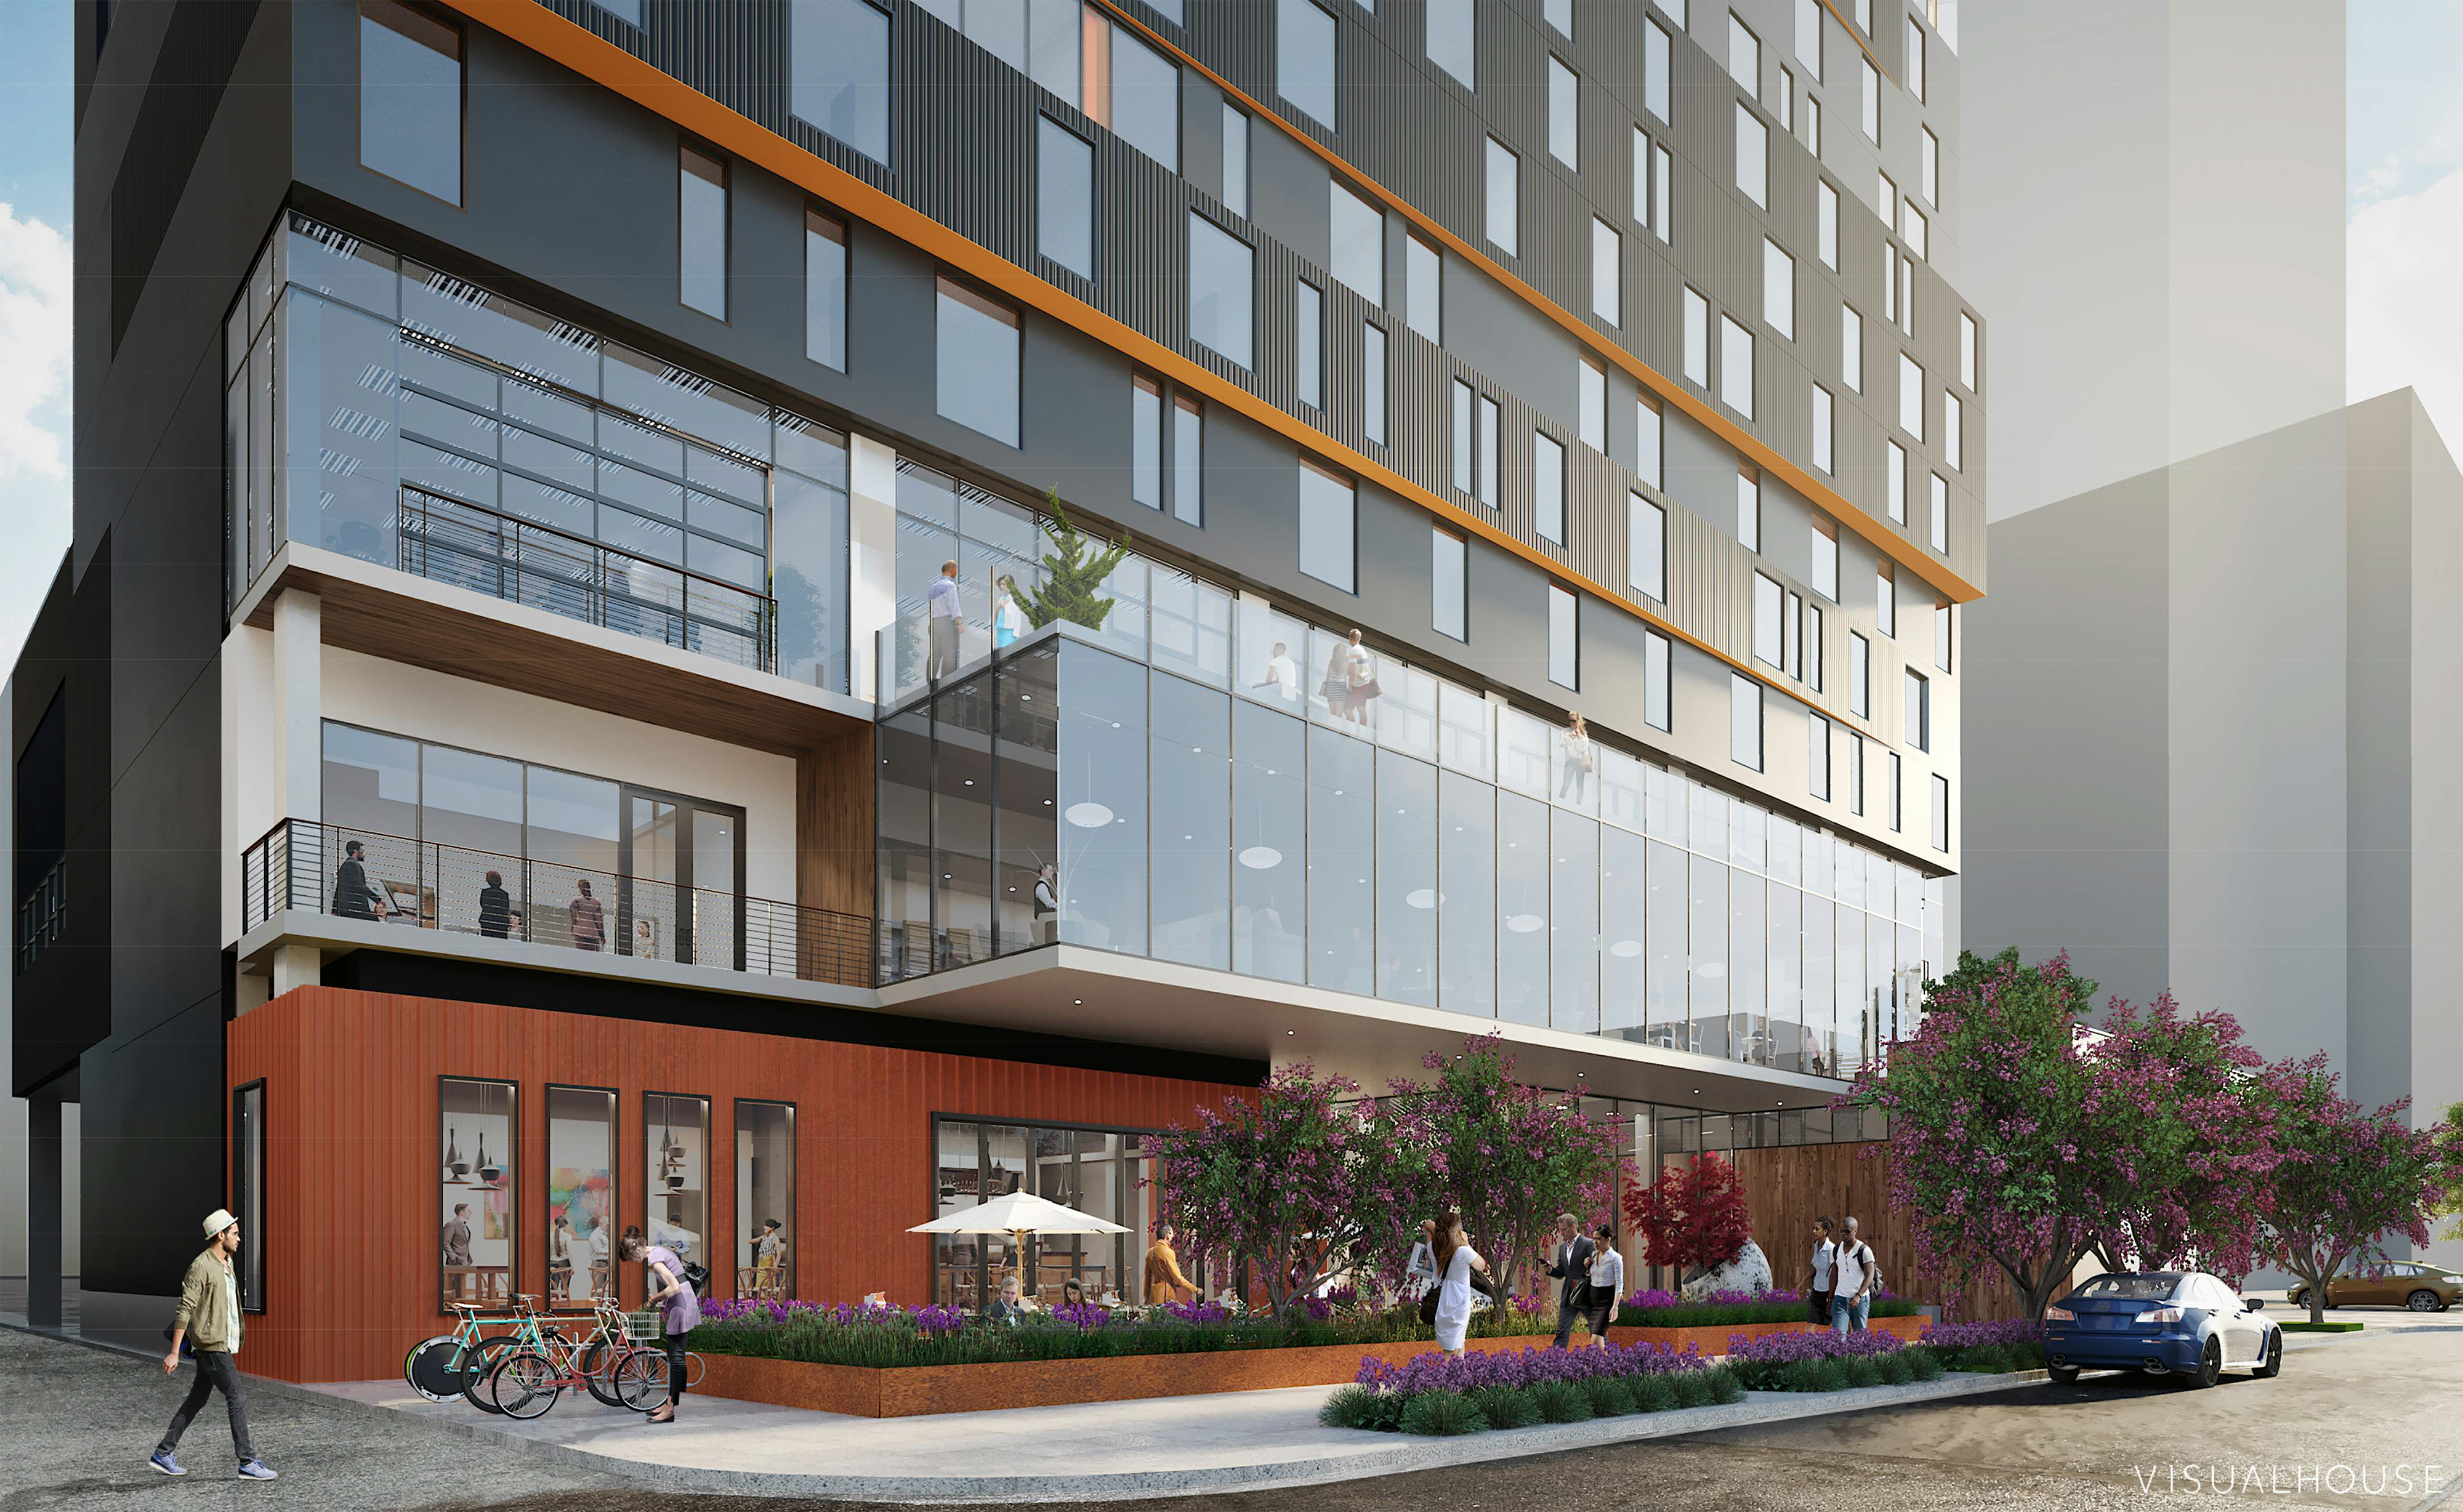 City is giving hotel near Convention Center $17M in tax breaks